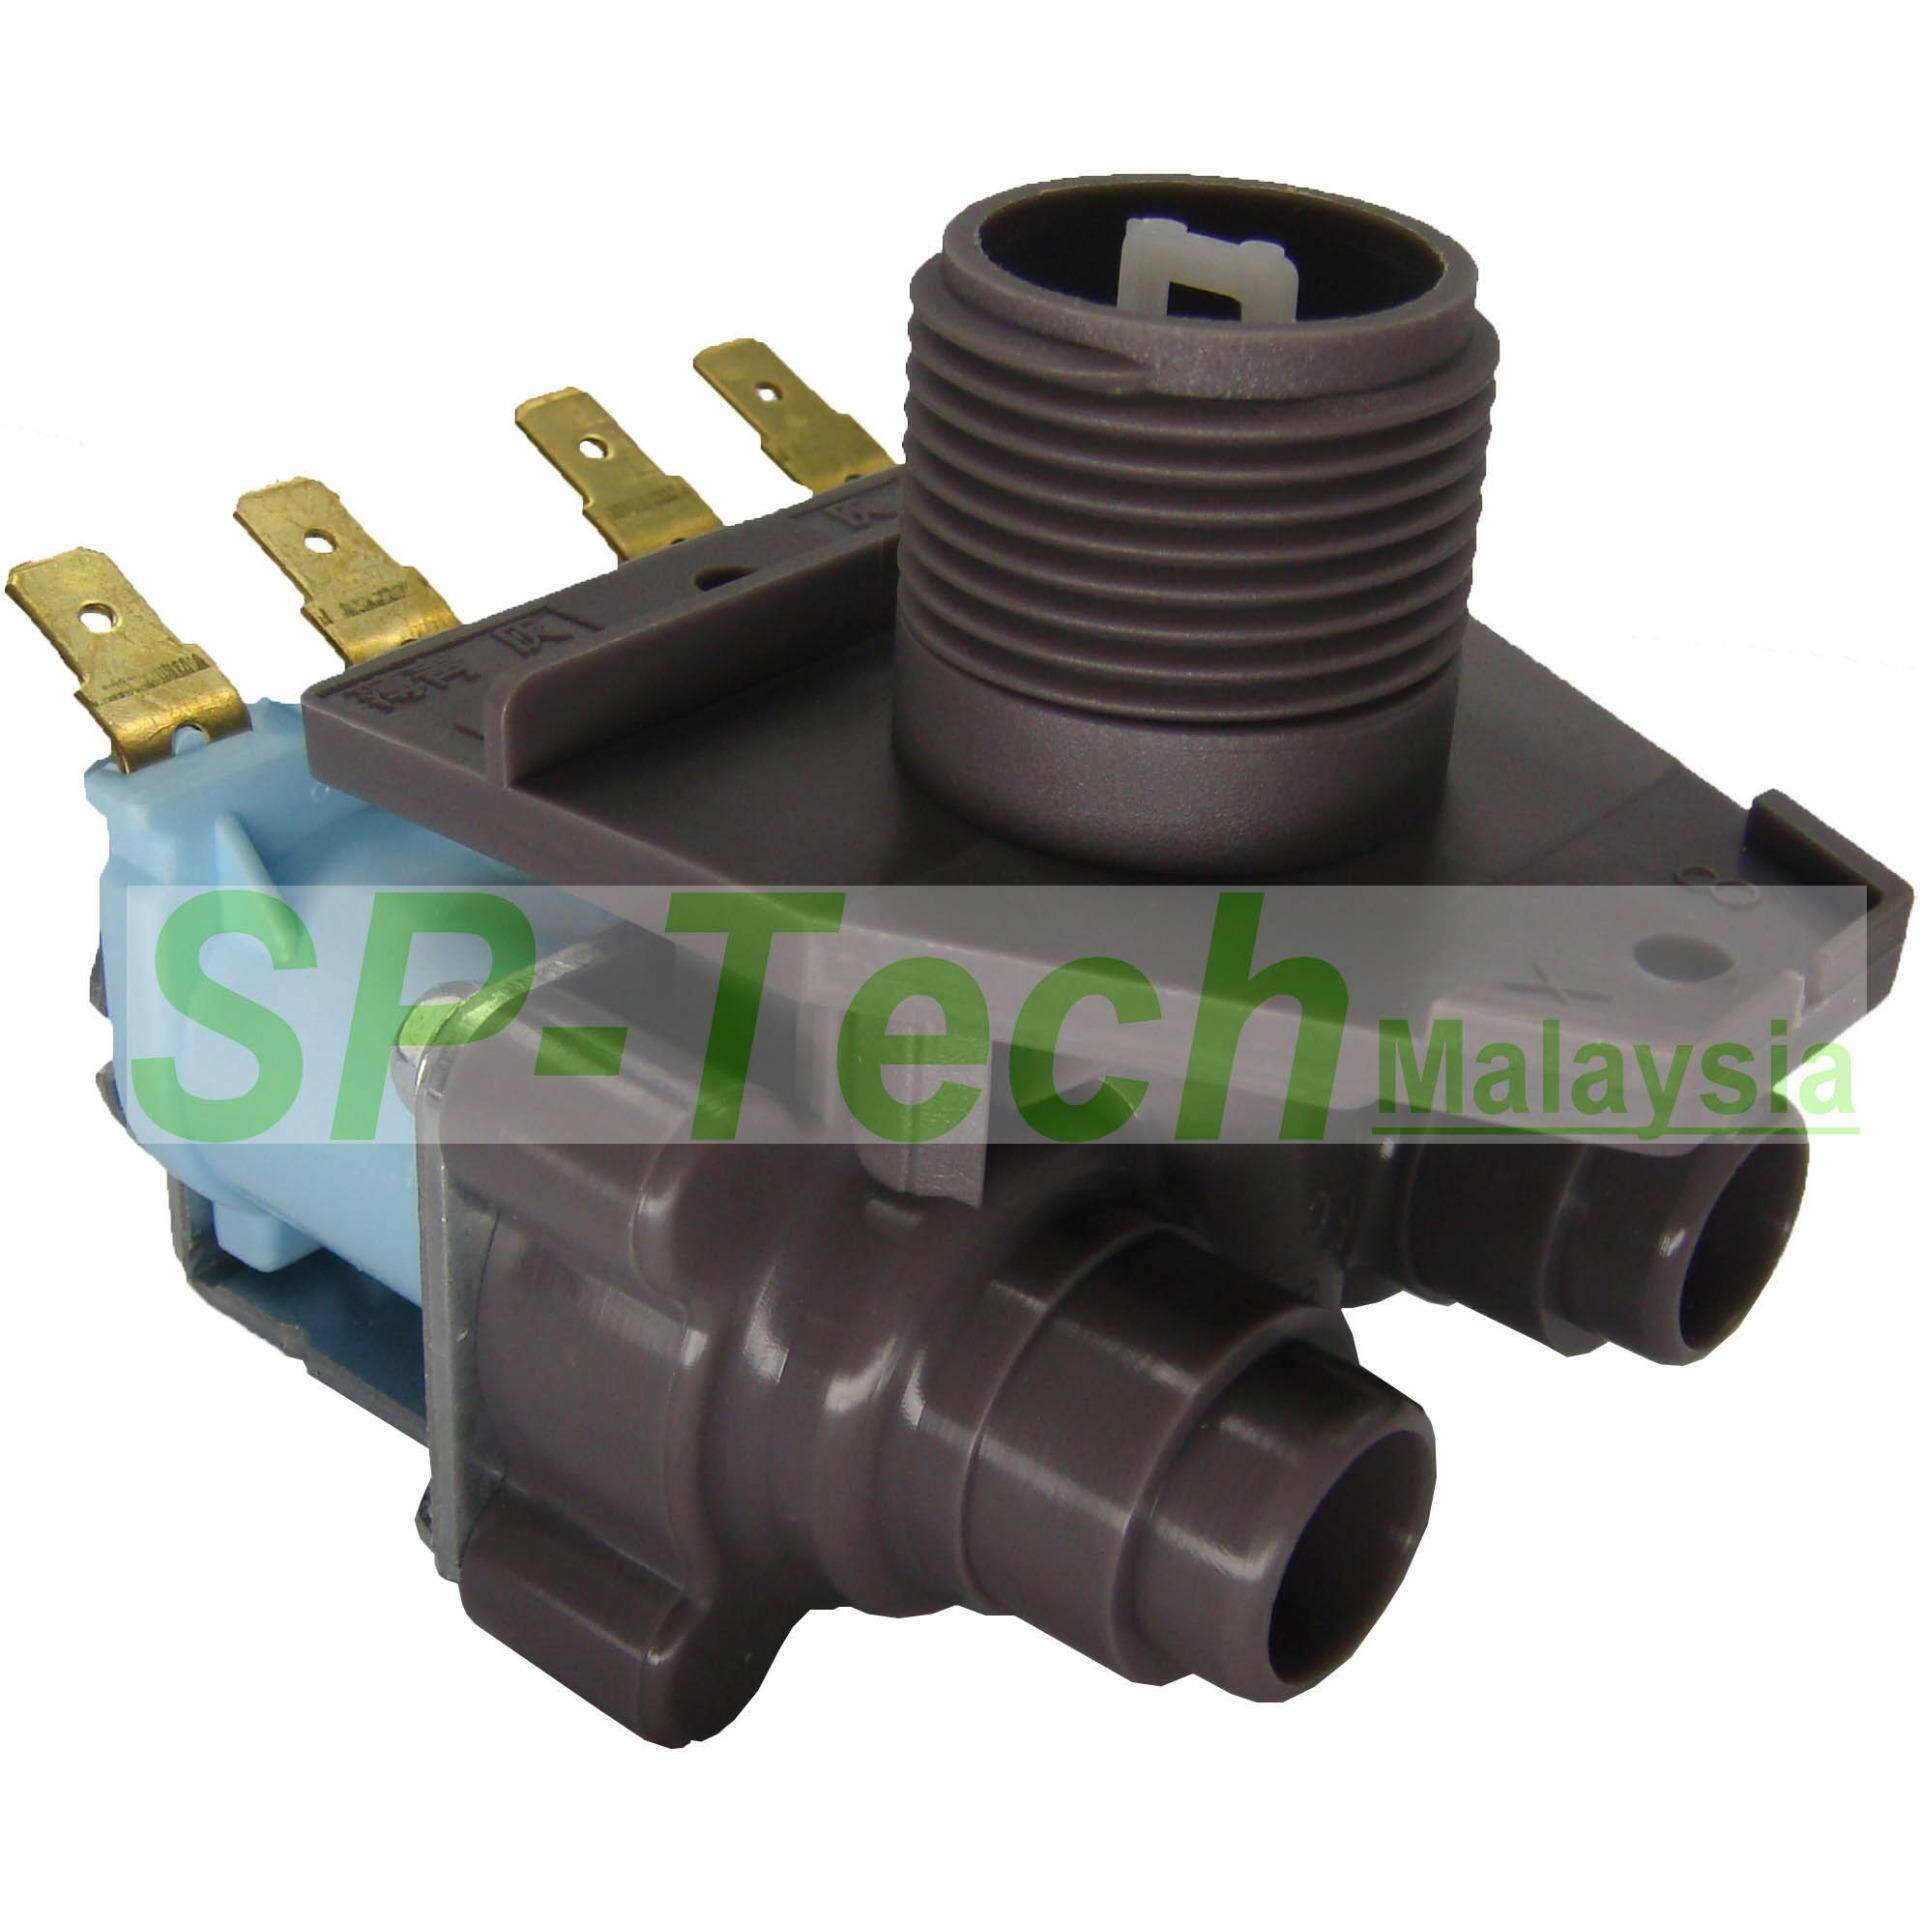 Toshiba Washer Dryer Accessories Price In Malaysia Best Car Stereo Wiring Diagram Aw 1160s Washing Machine Water Inlet Valve